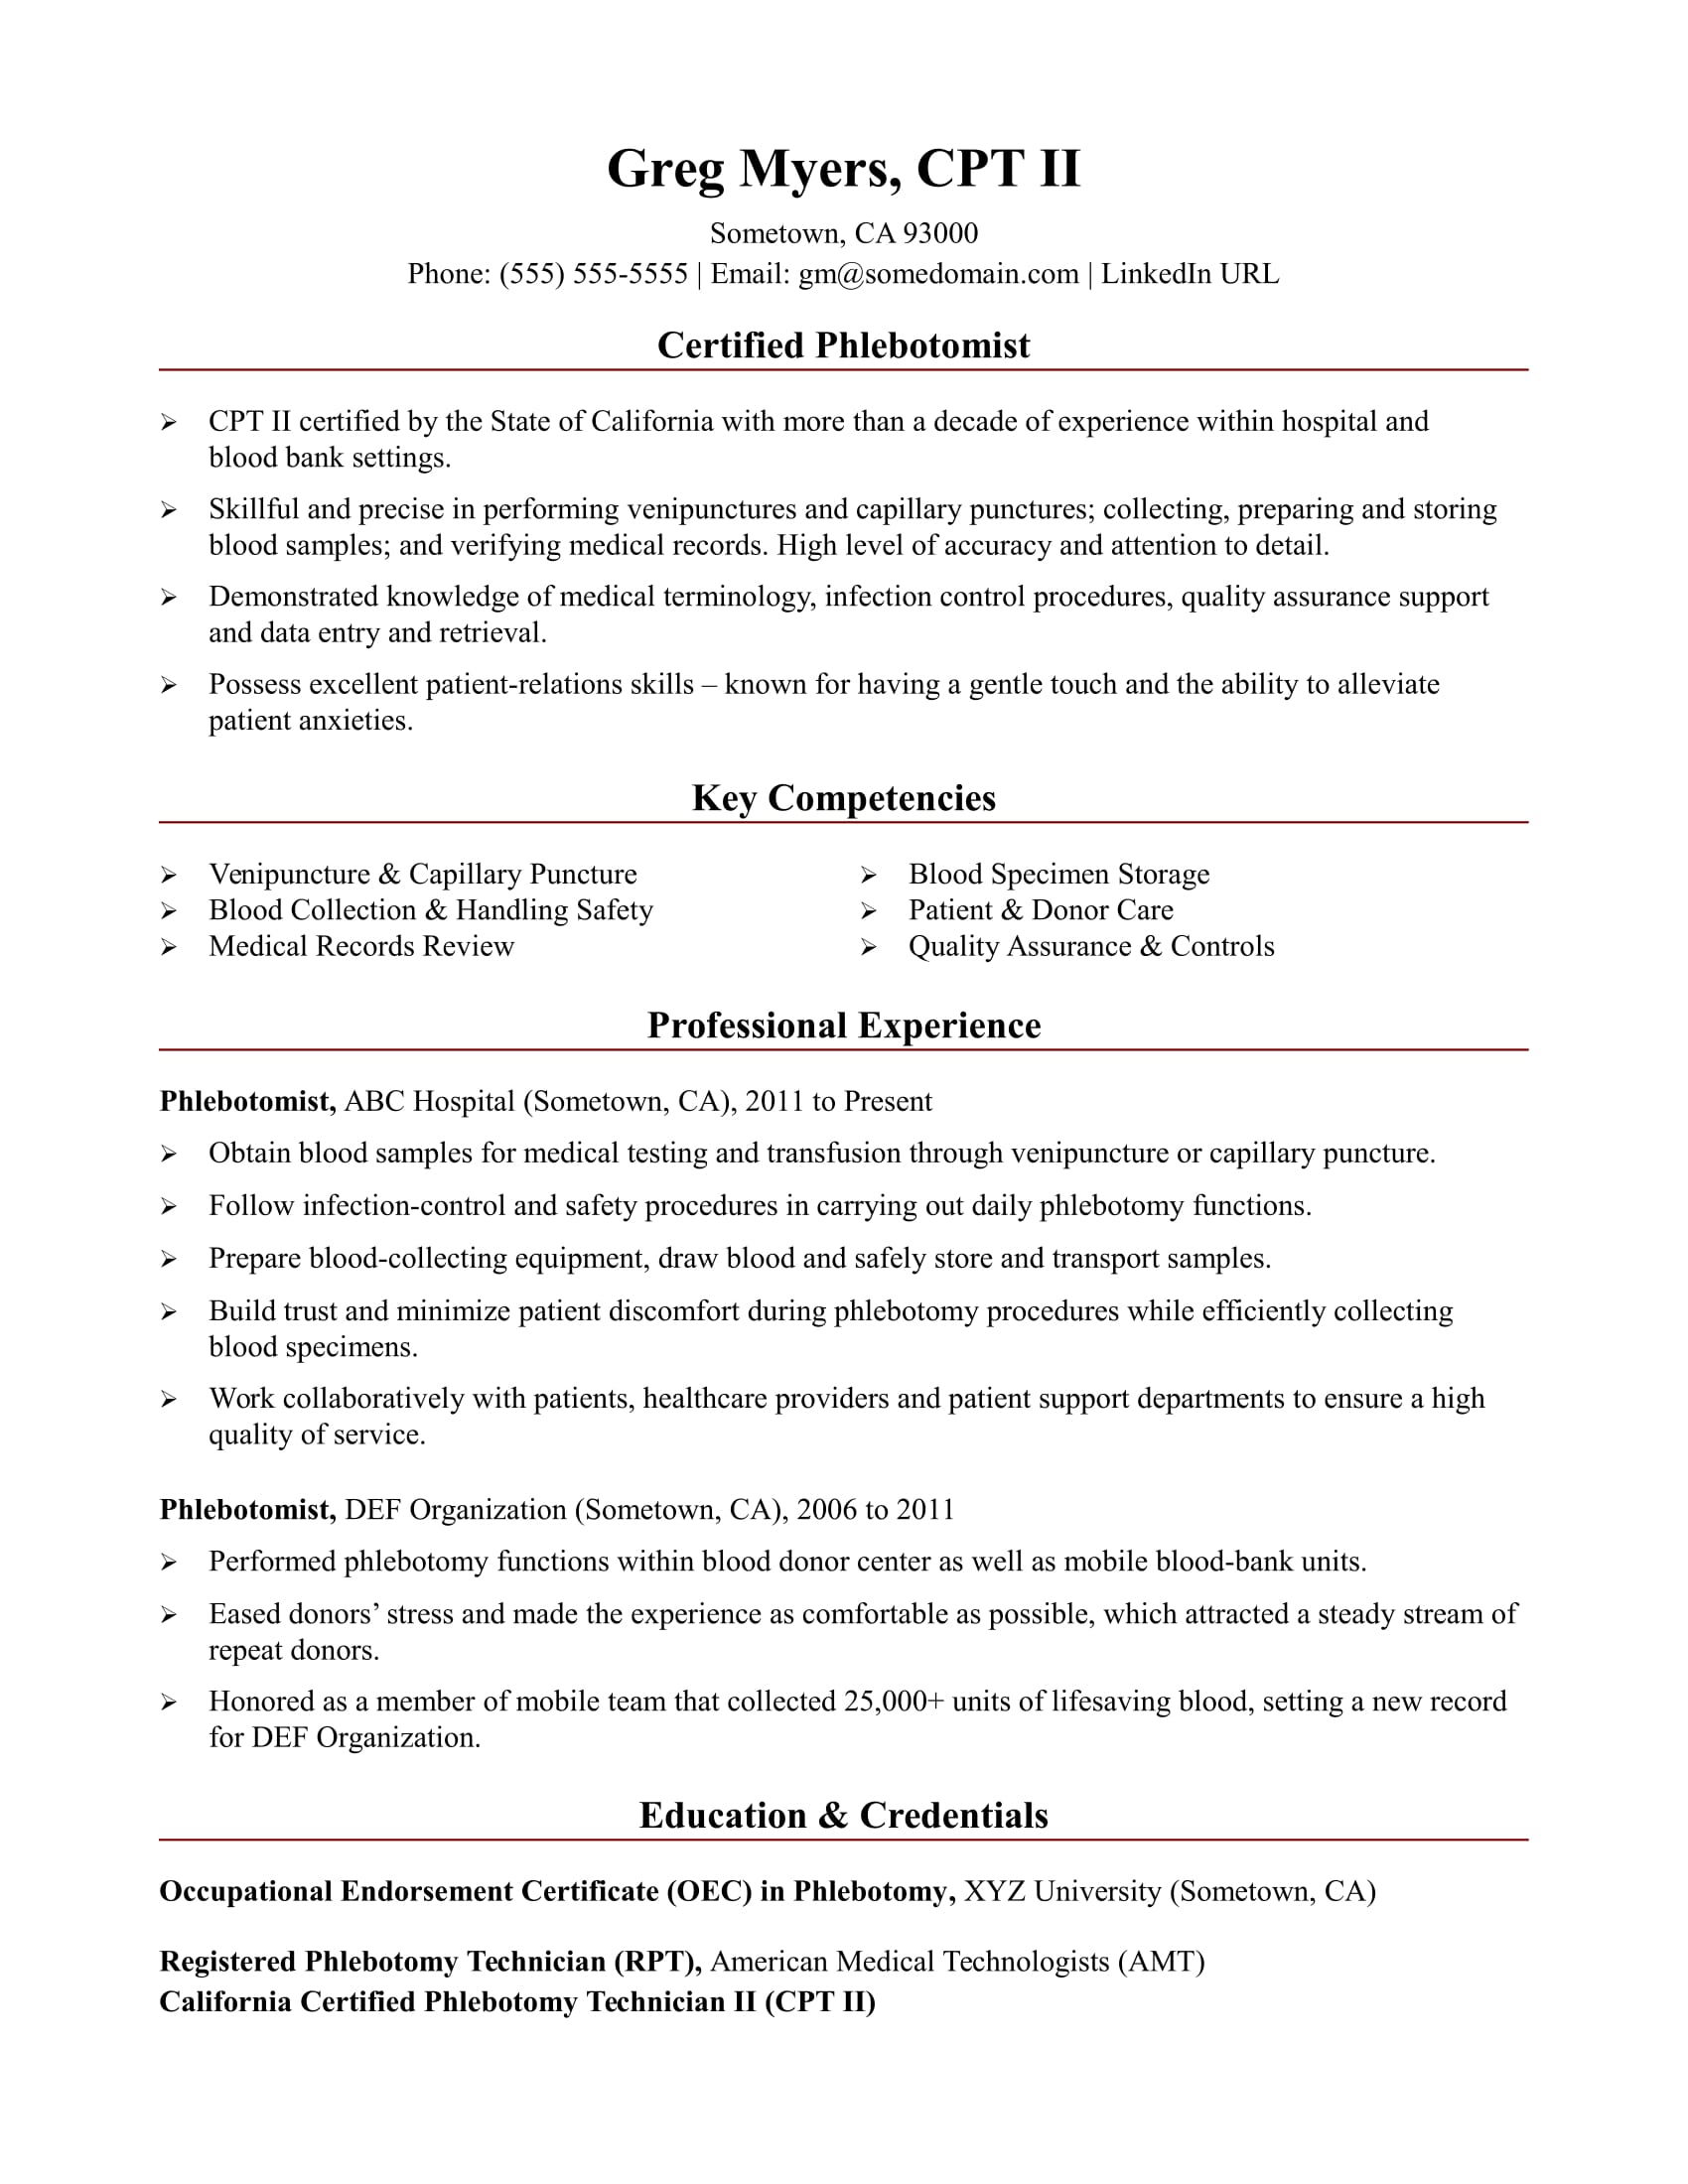 Sample Resume For A Phlebotomist  Phlebotomy Technician Resume